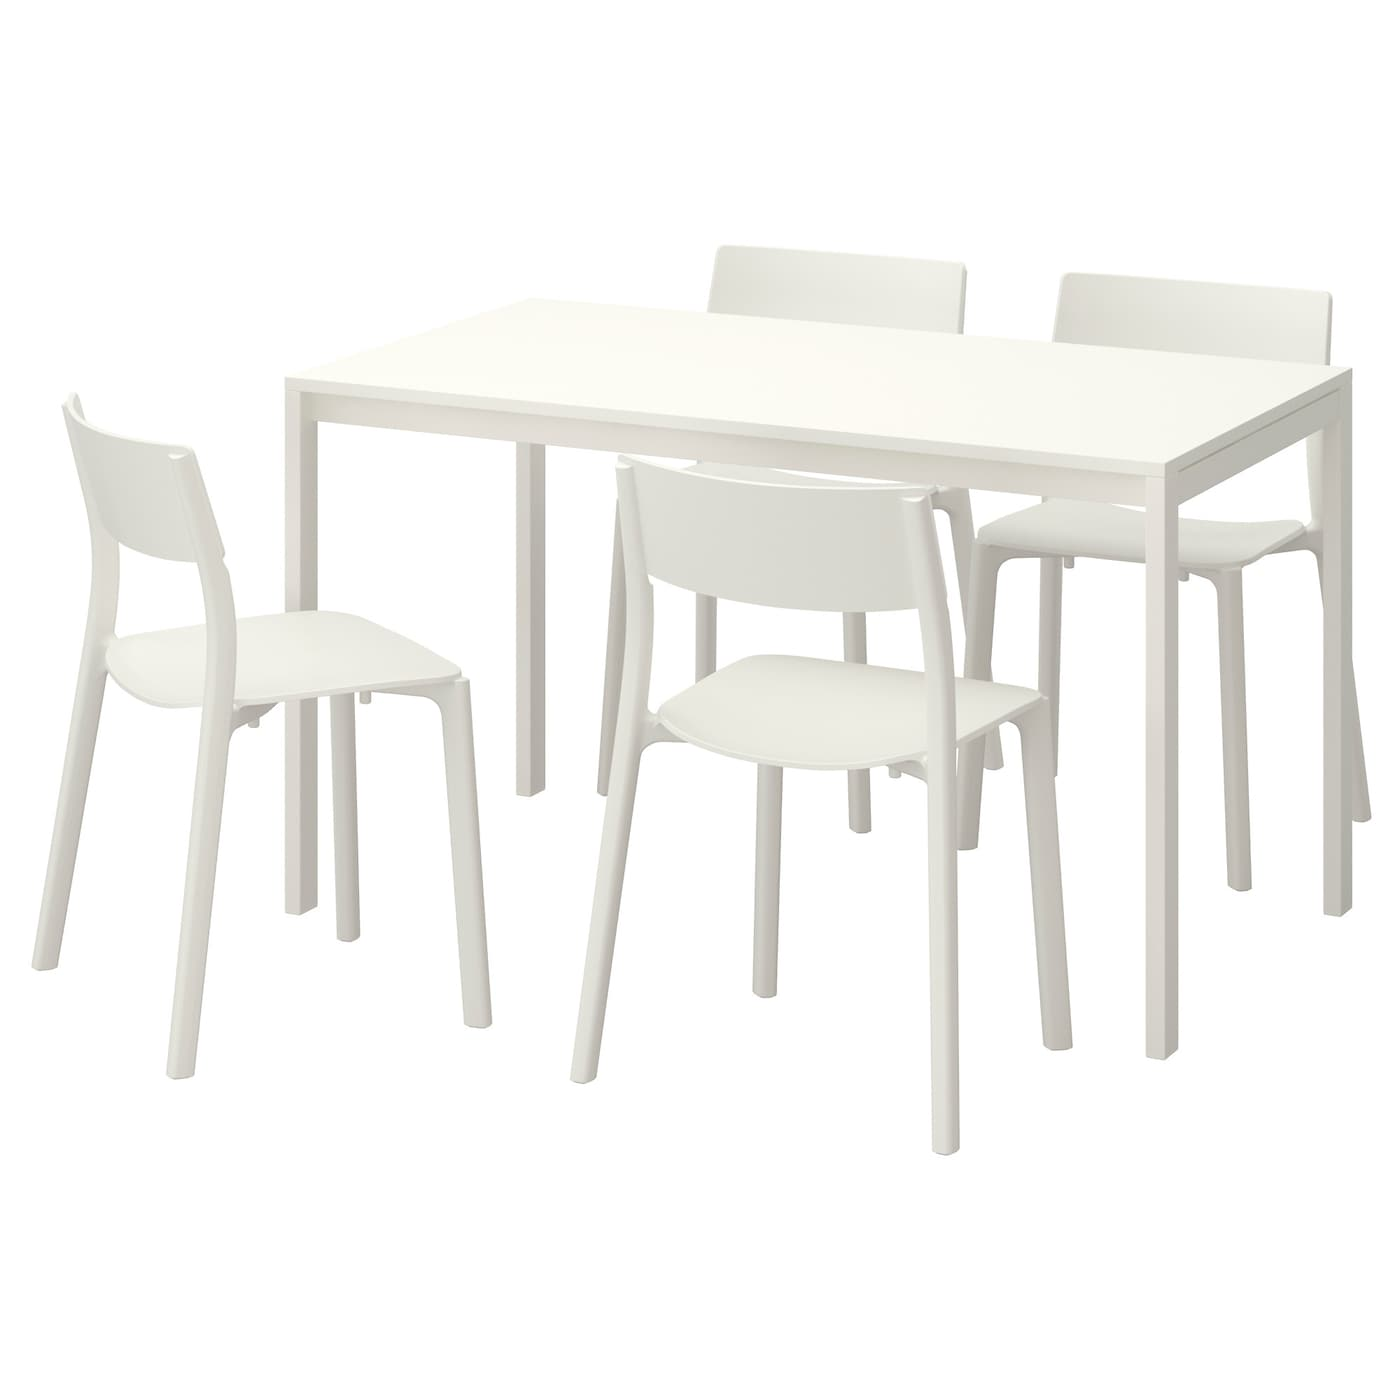 Melltorp janinge table and 4 chairs white white 125 cm ikea for Ikea dining sets usa